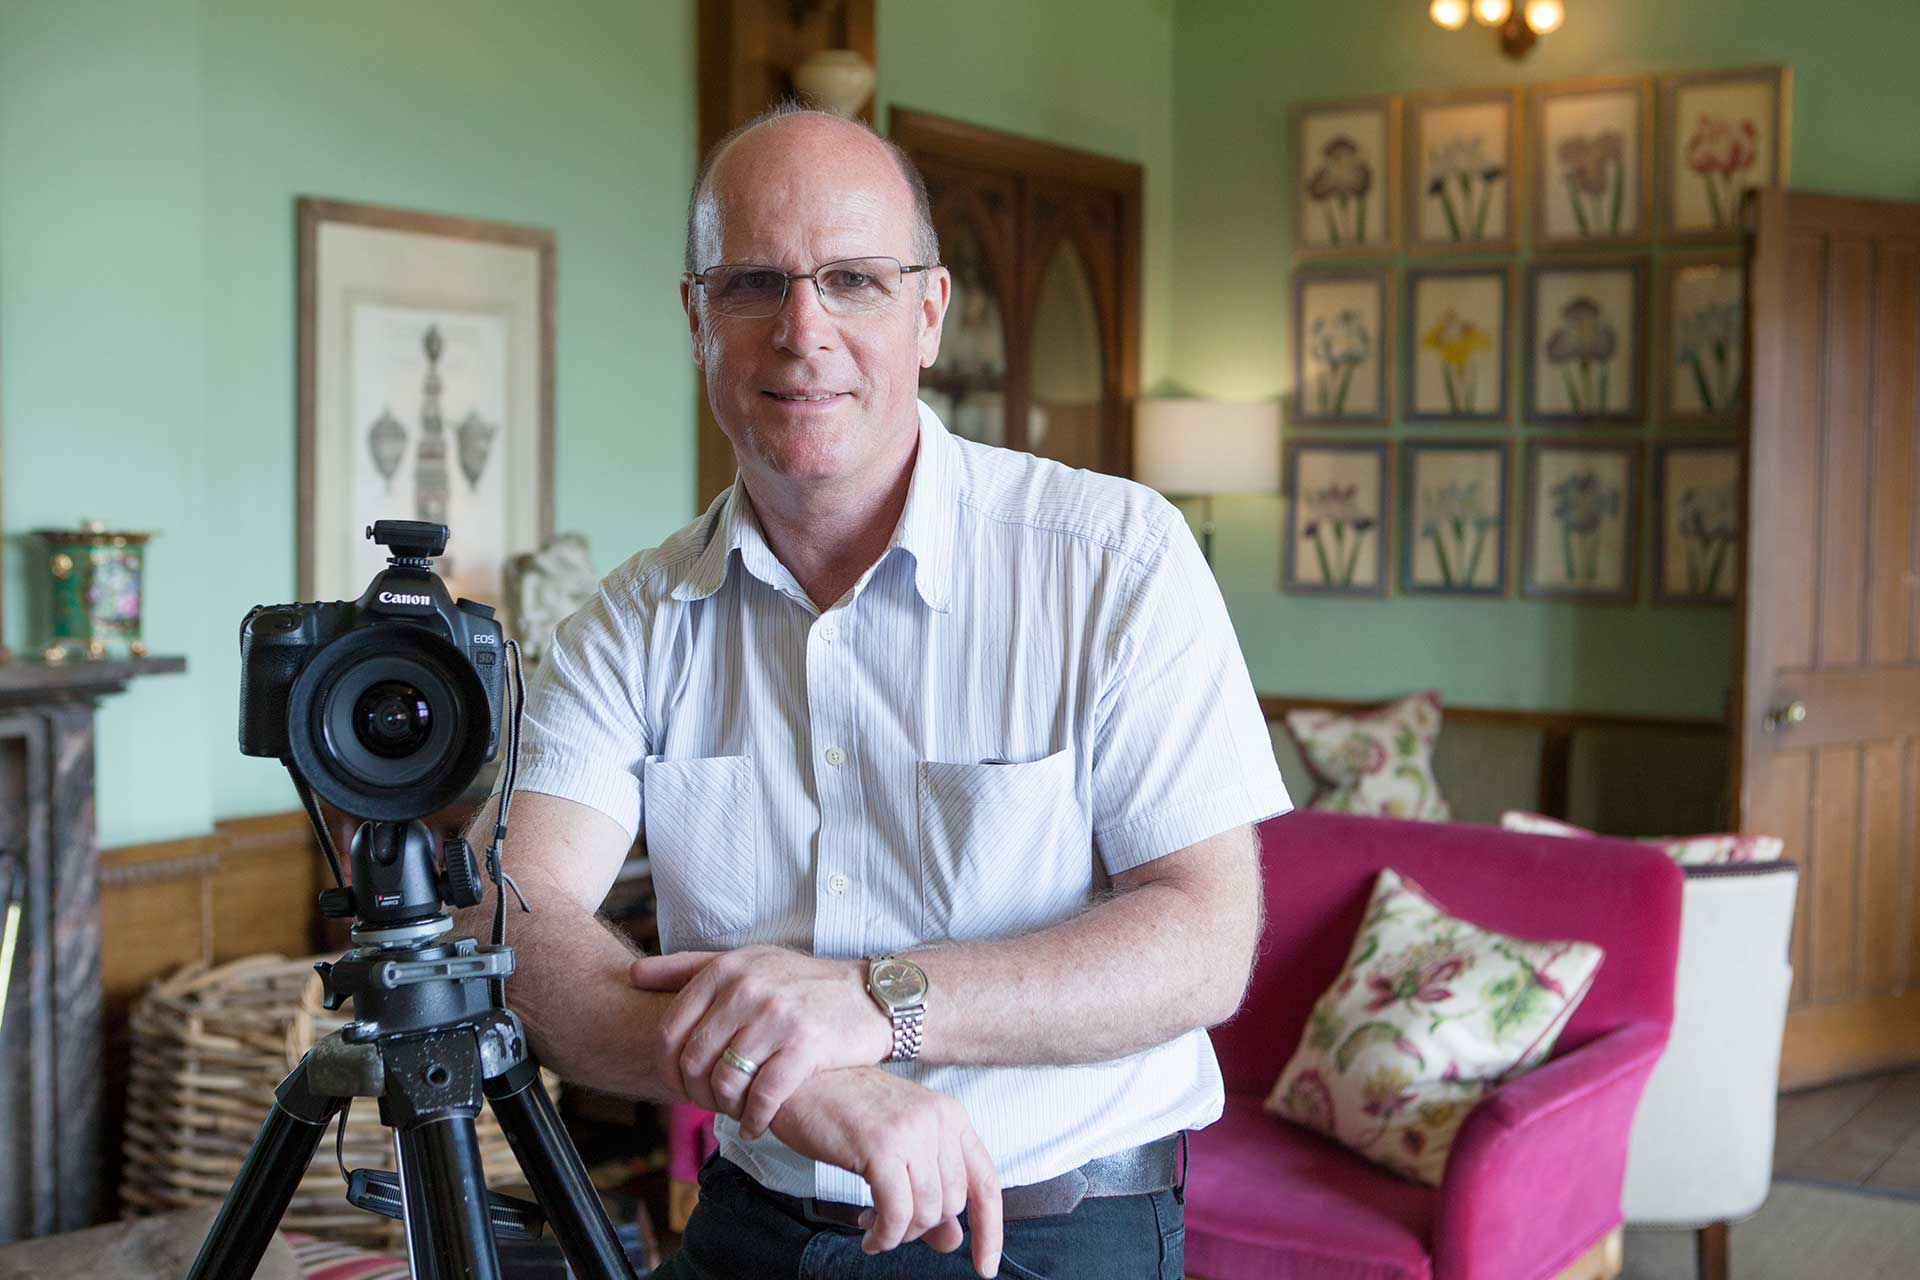 Simon is an award-winning photographer in Cornwall